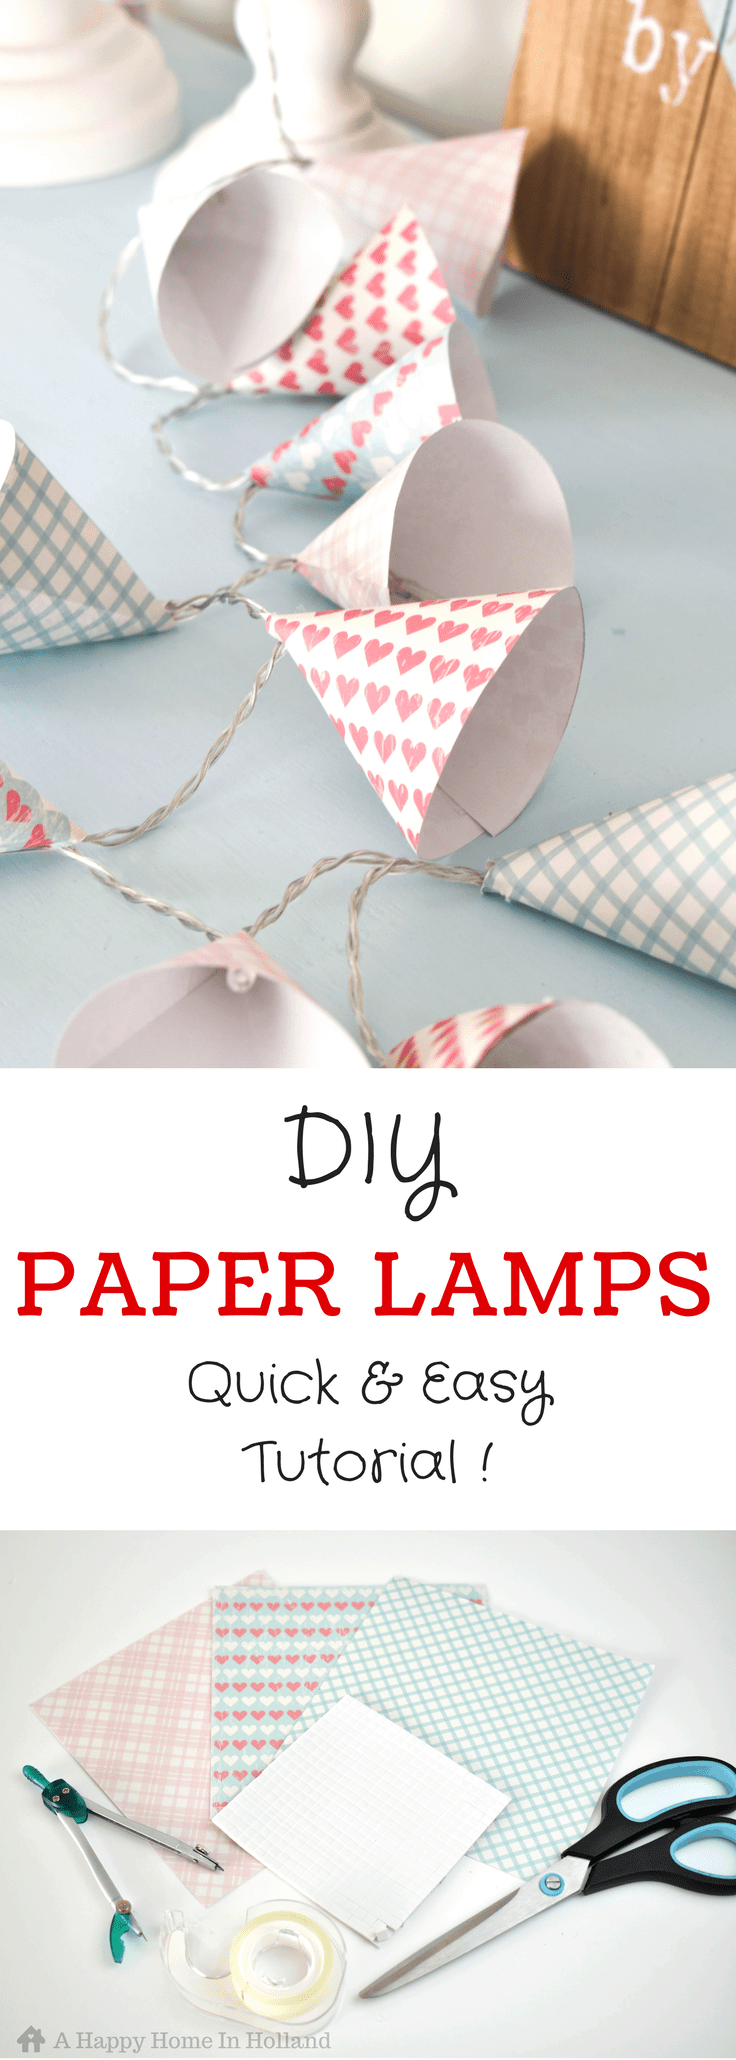 DIY Mini Paper Lampshade Covers - learn how to make these pretty paper cone covers for your old LED string lights